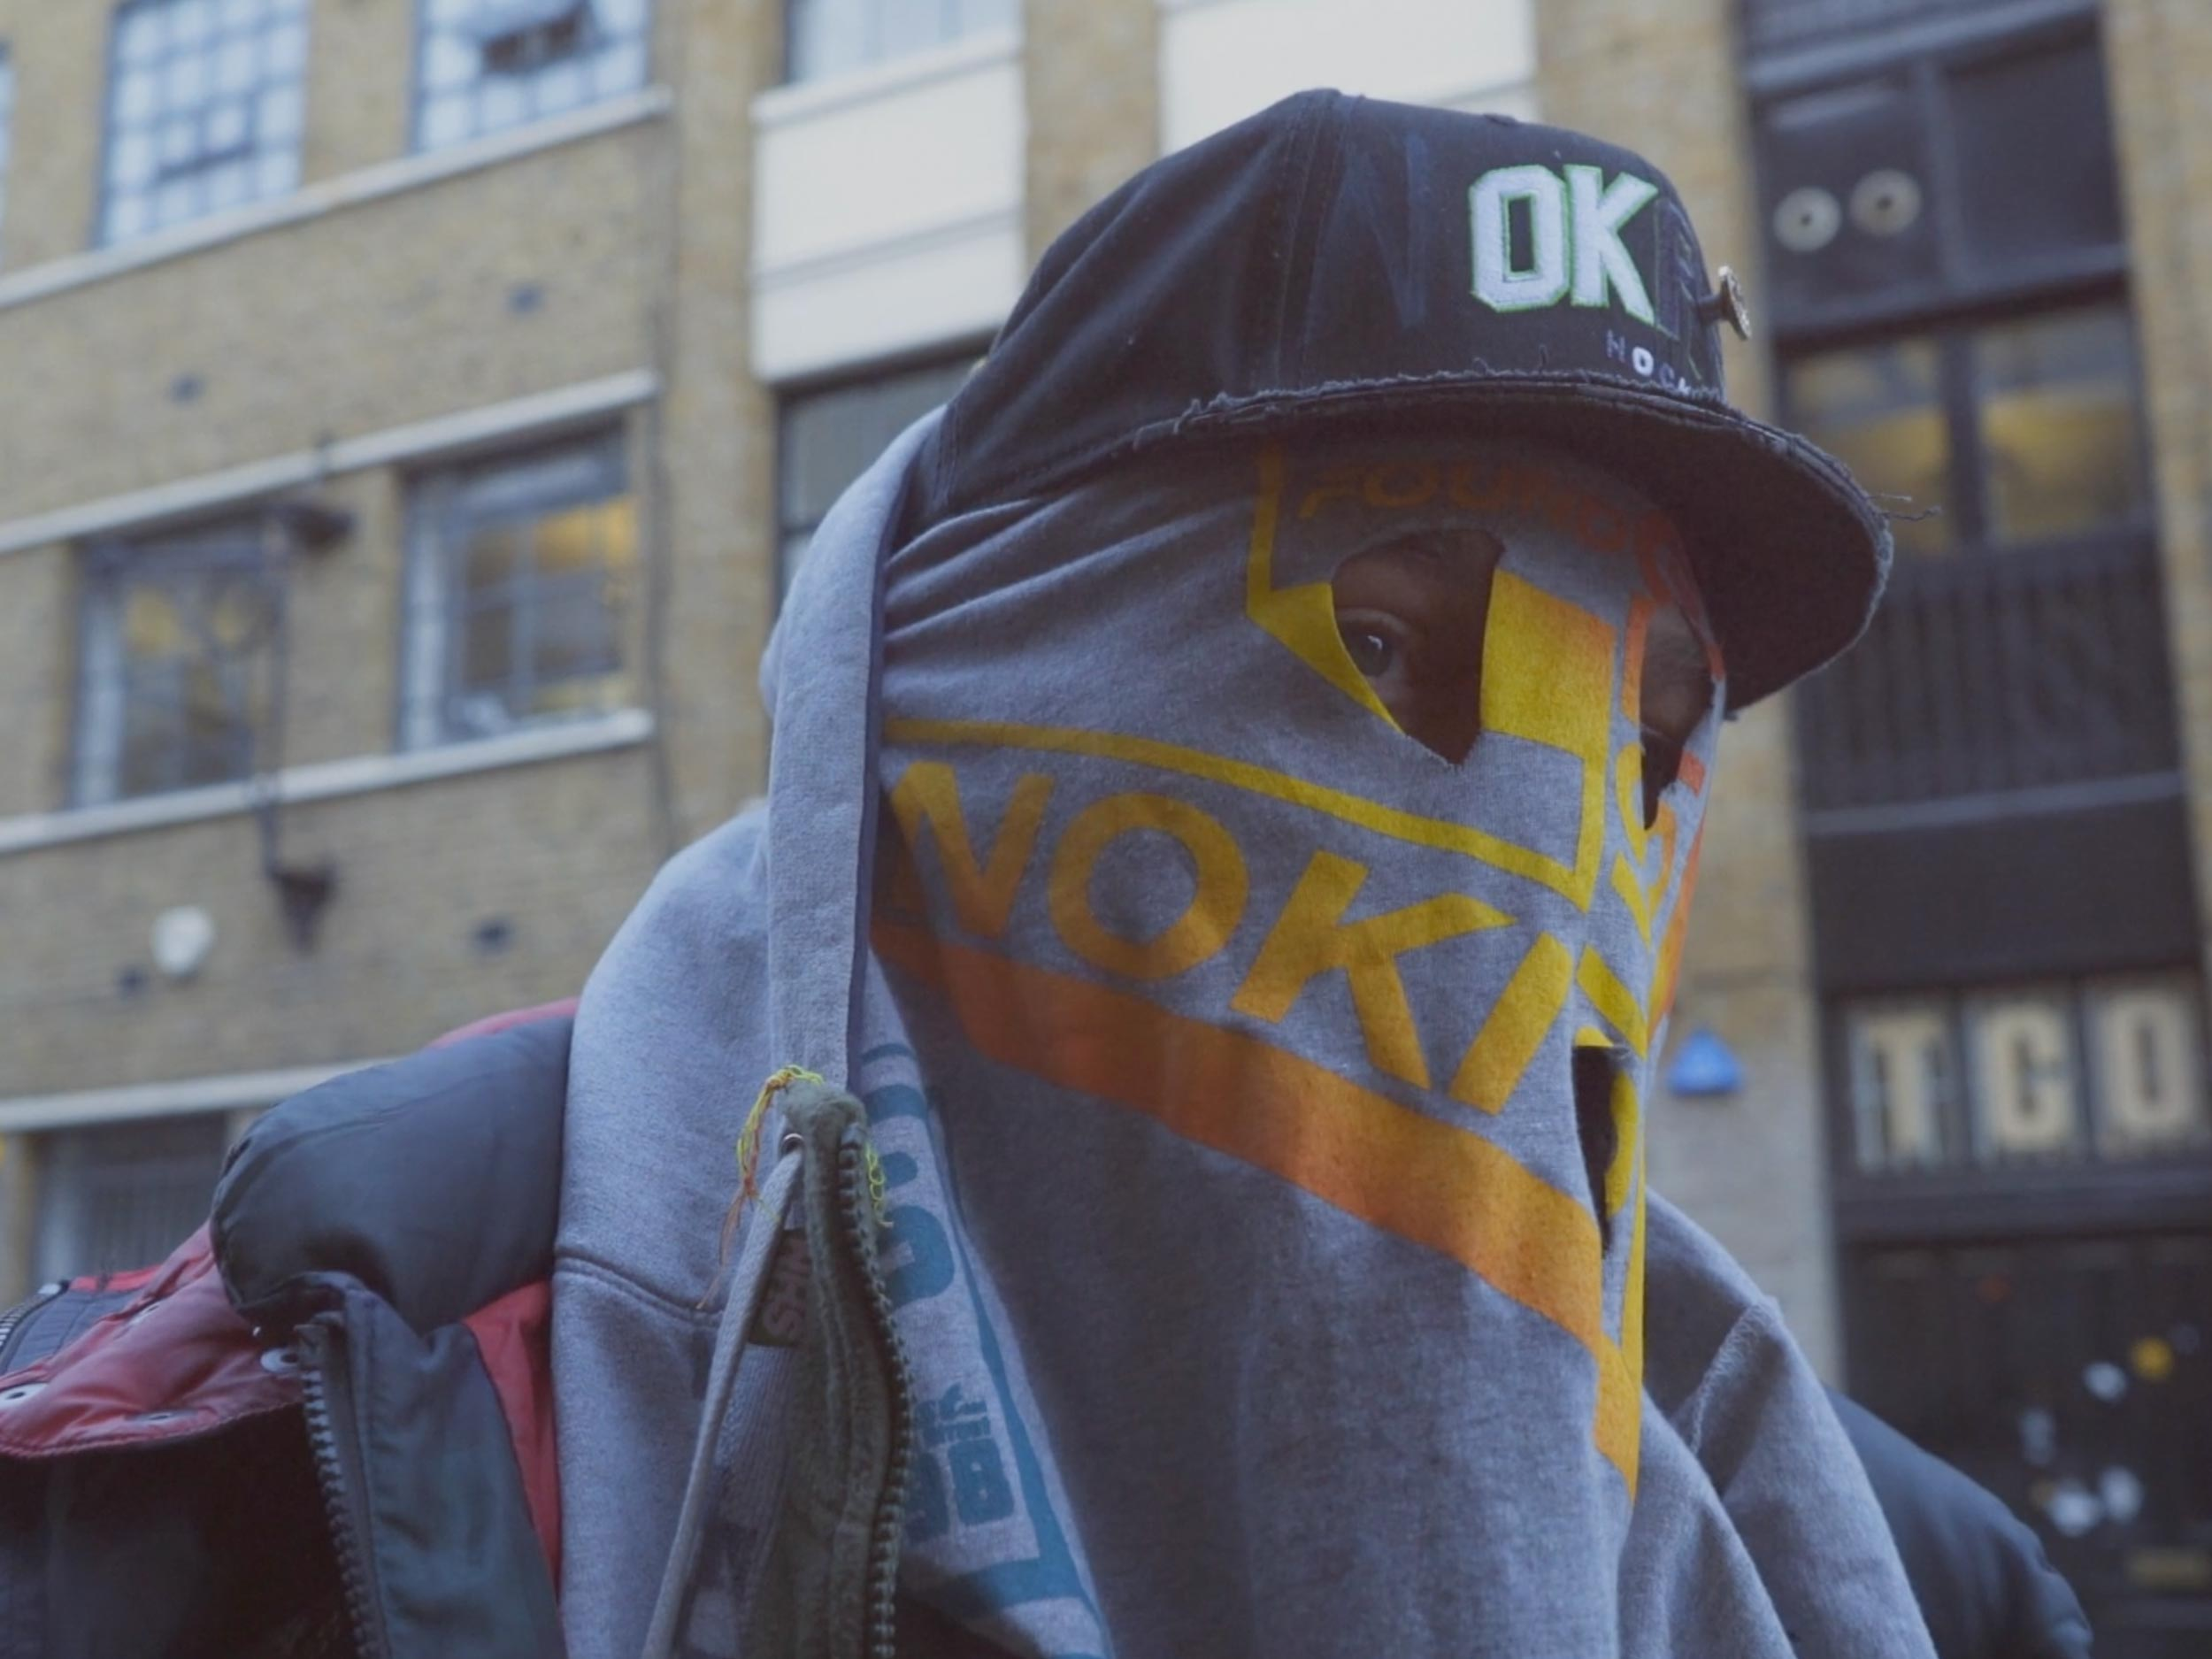 A walking tour of Shoreditch with Dr Noki, London's original king of DIY